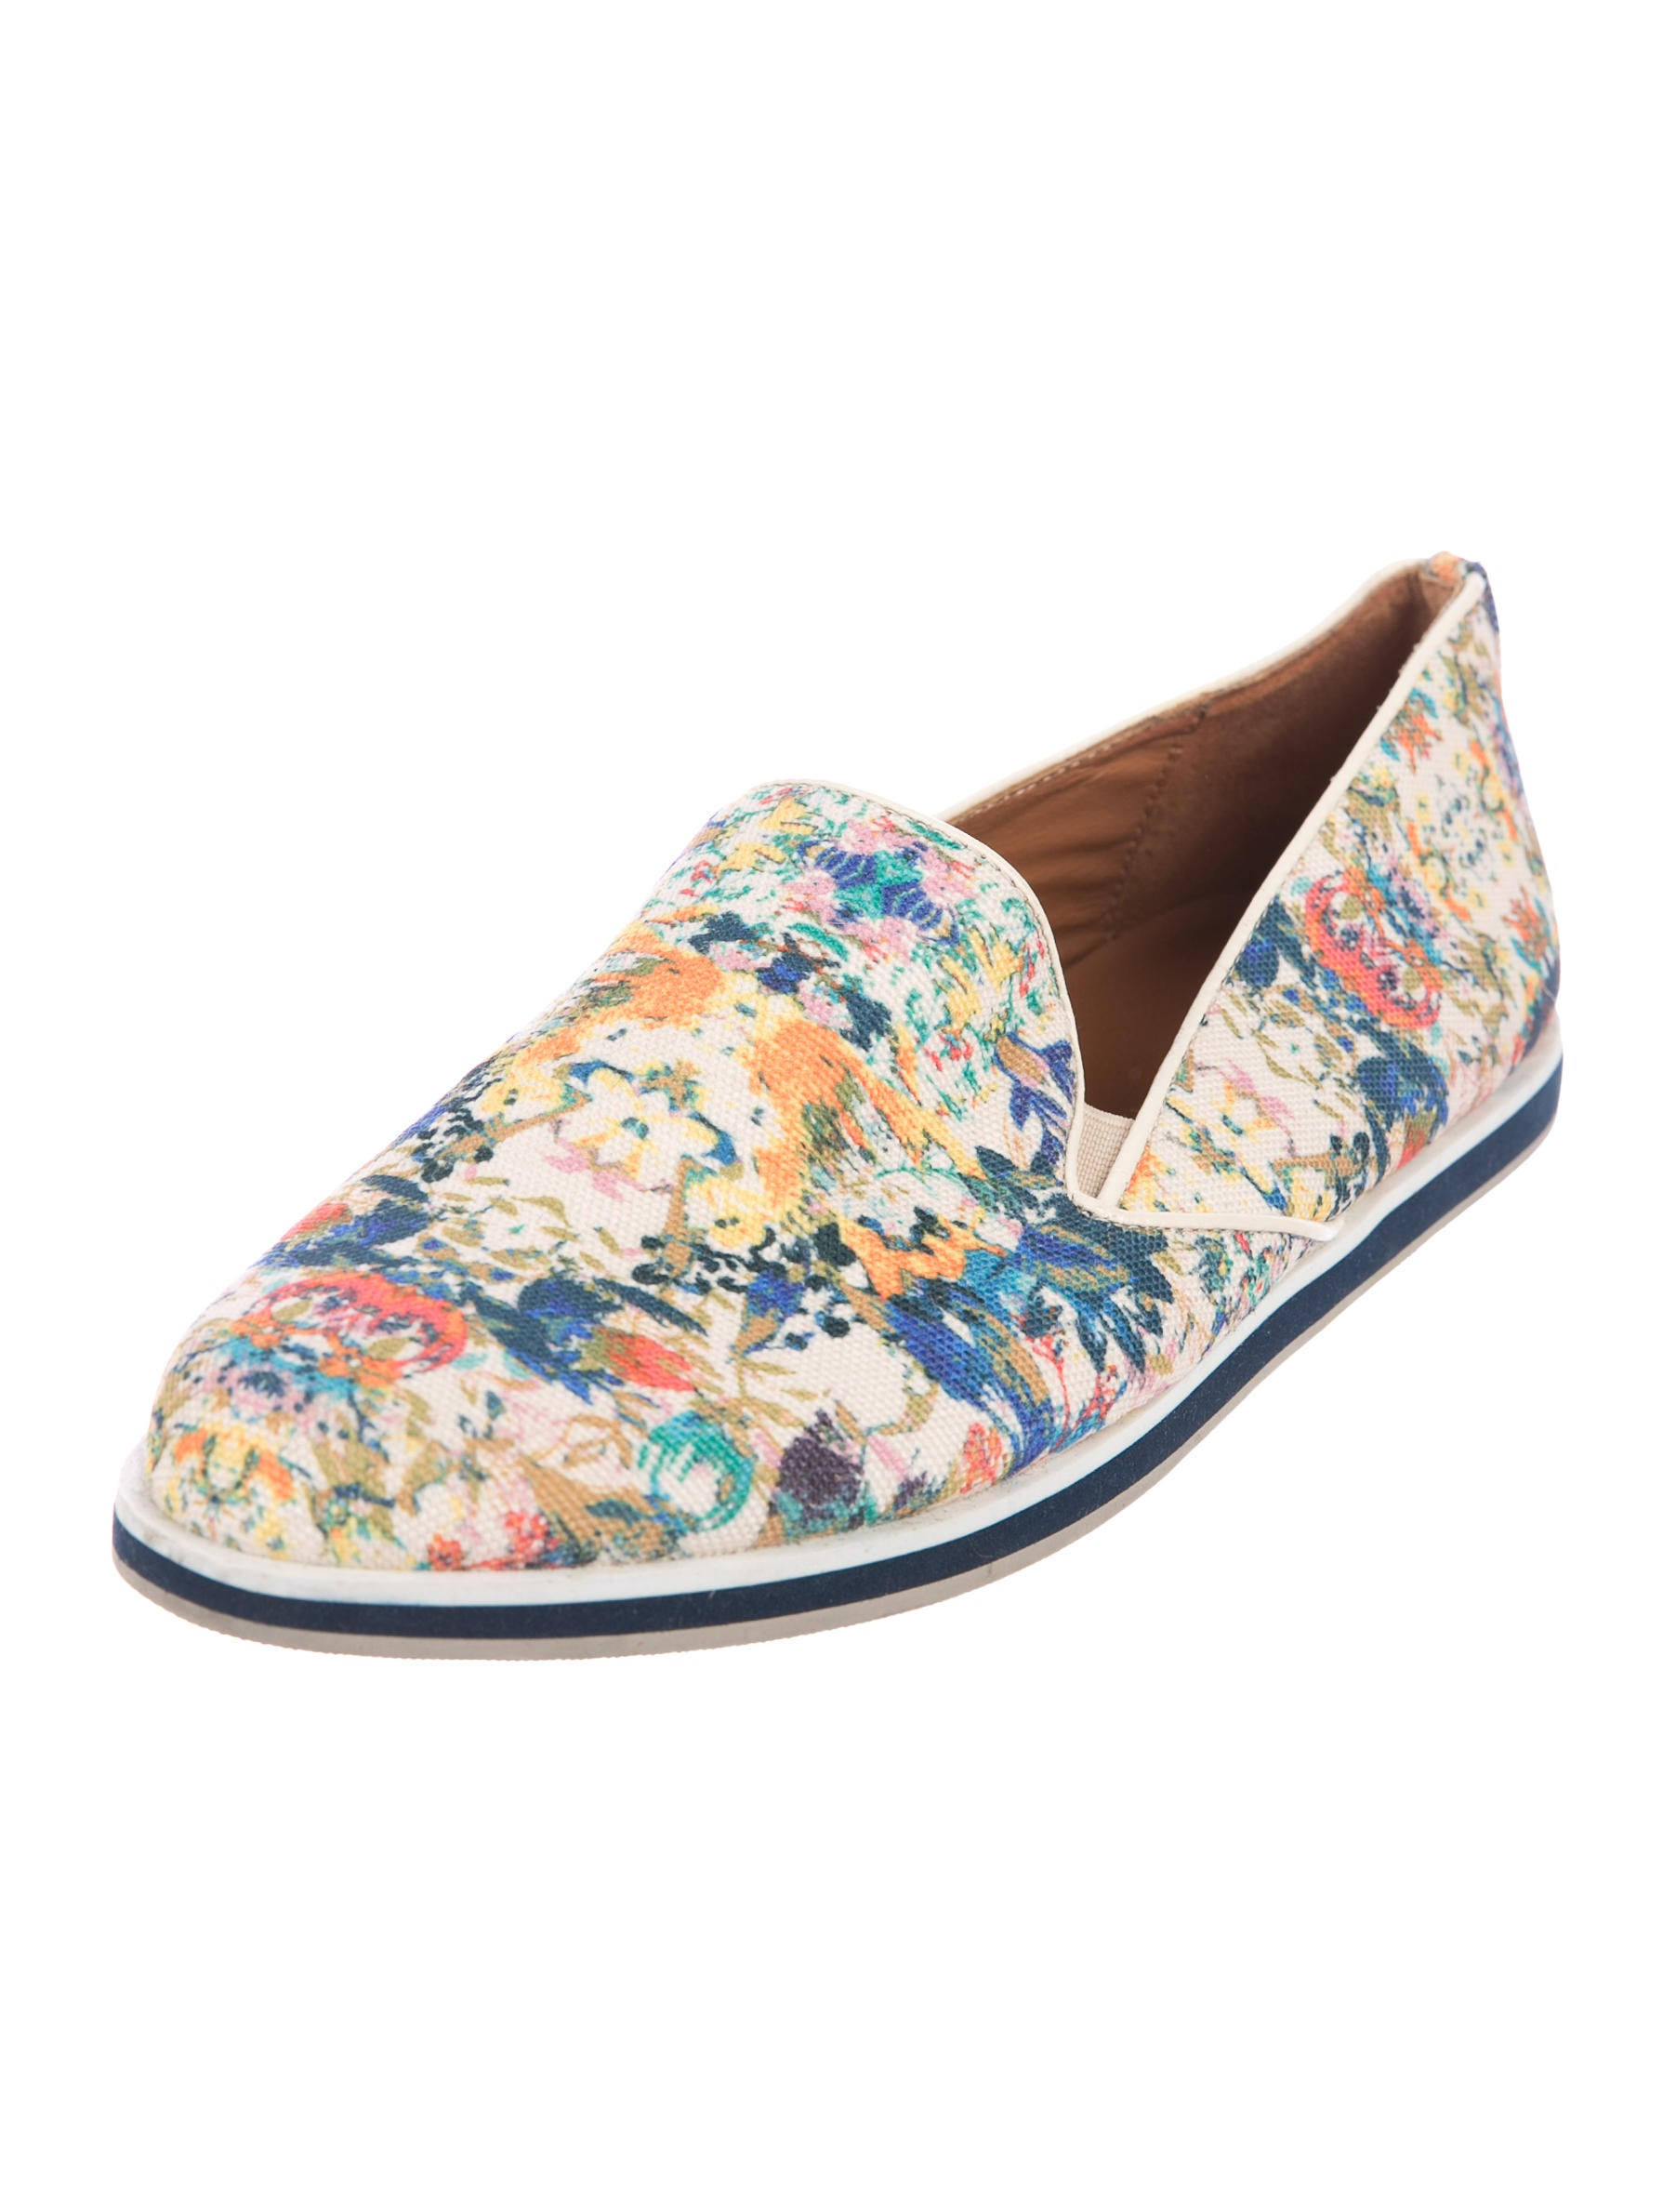 Rebecca Minkoff Floral Canvas Loafers finishline discount fashionable explore excellent cheap price WwwO4tzqP